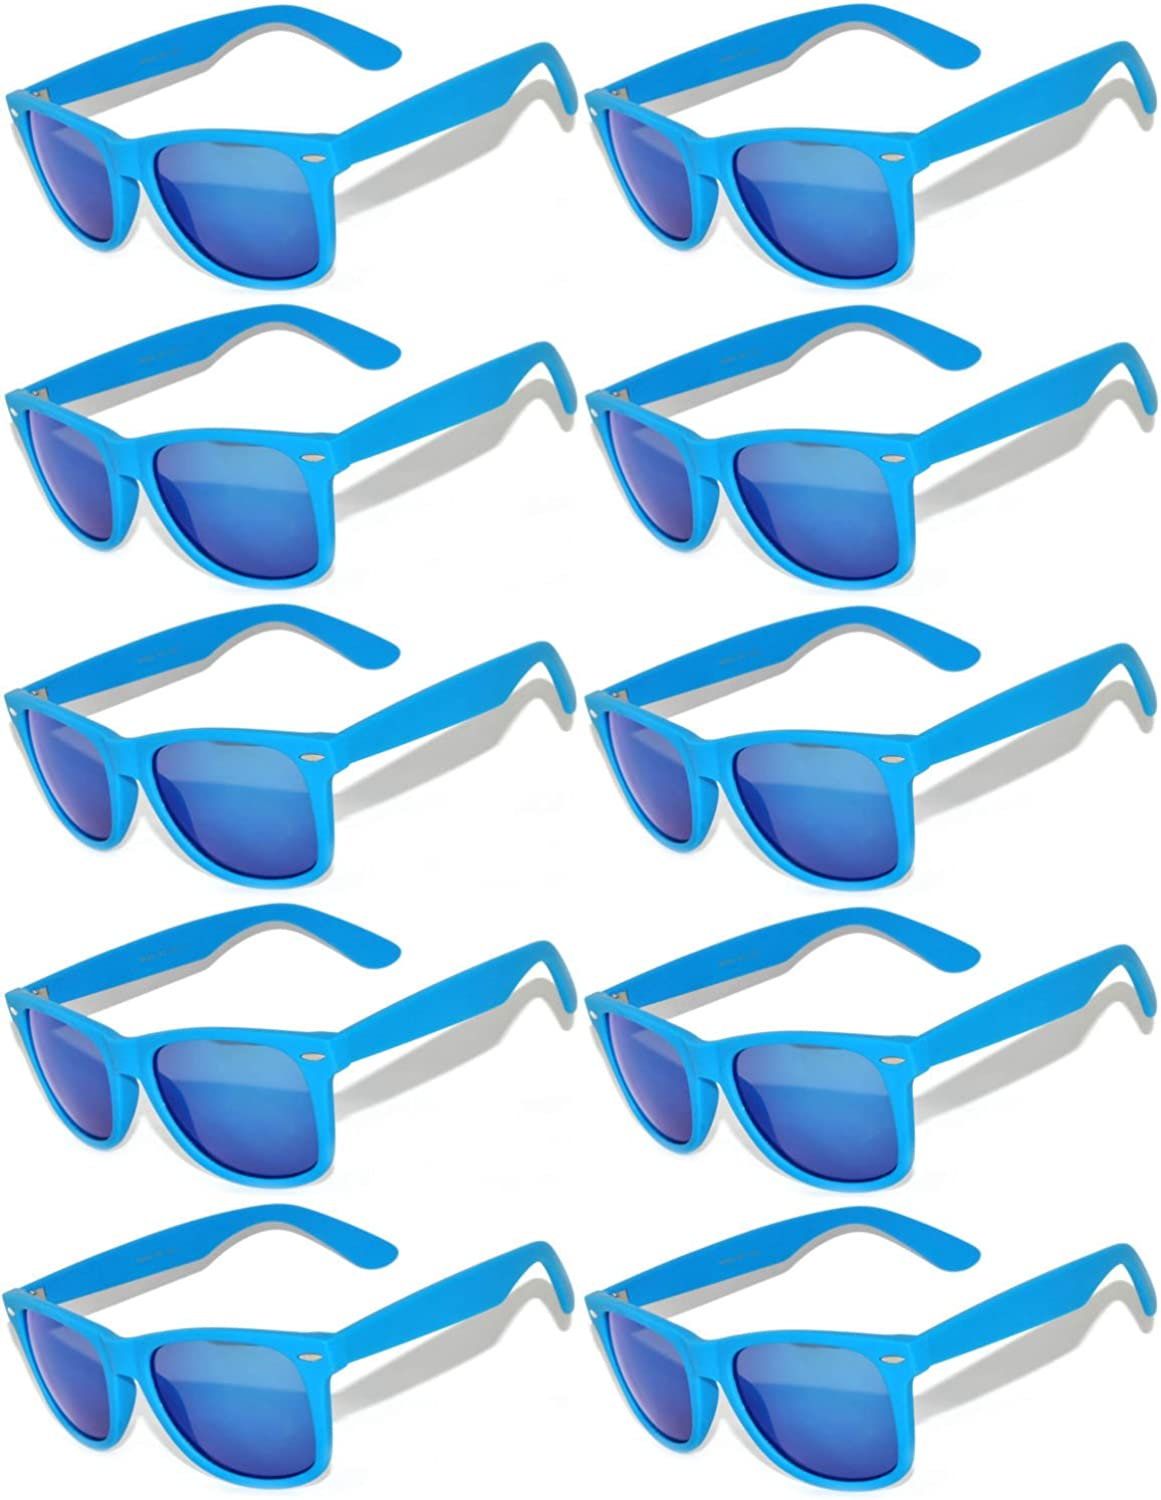 Vintage Mirrored Lens Sunglasses Matte Frame 10 Pack in Multiple Colors OWL.